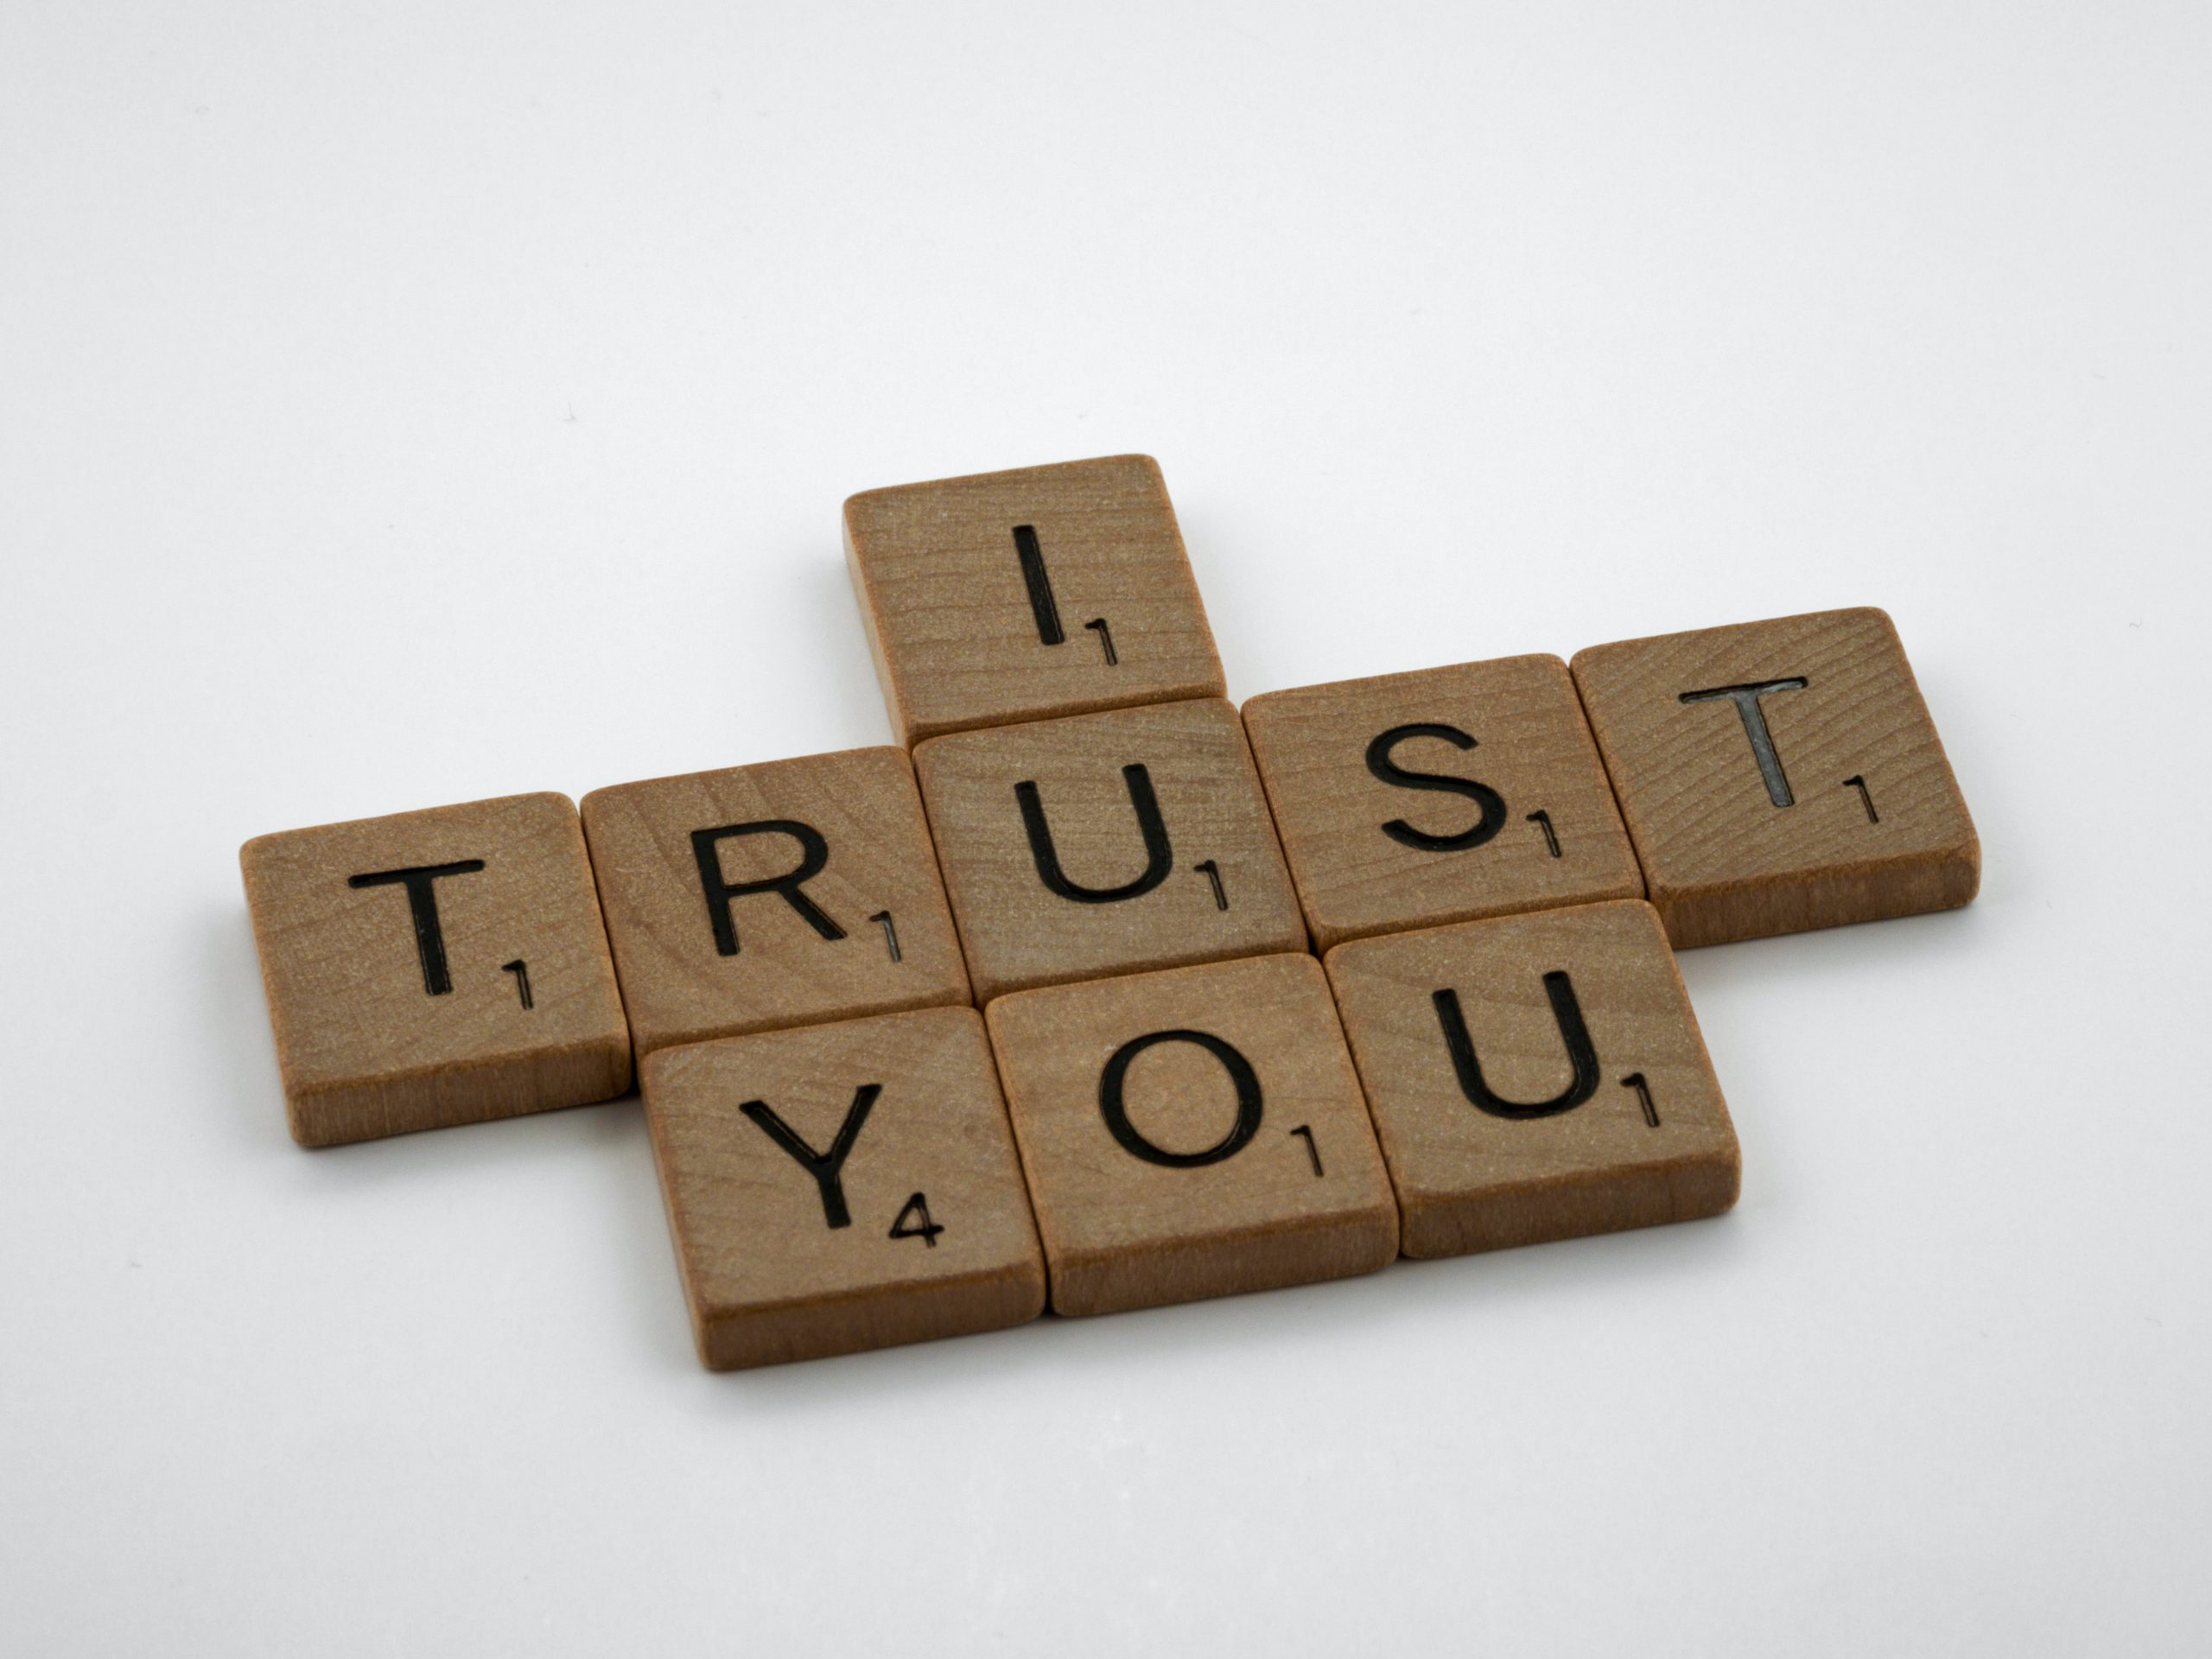 Why Should You Trust Us?